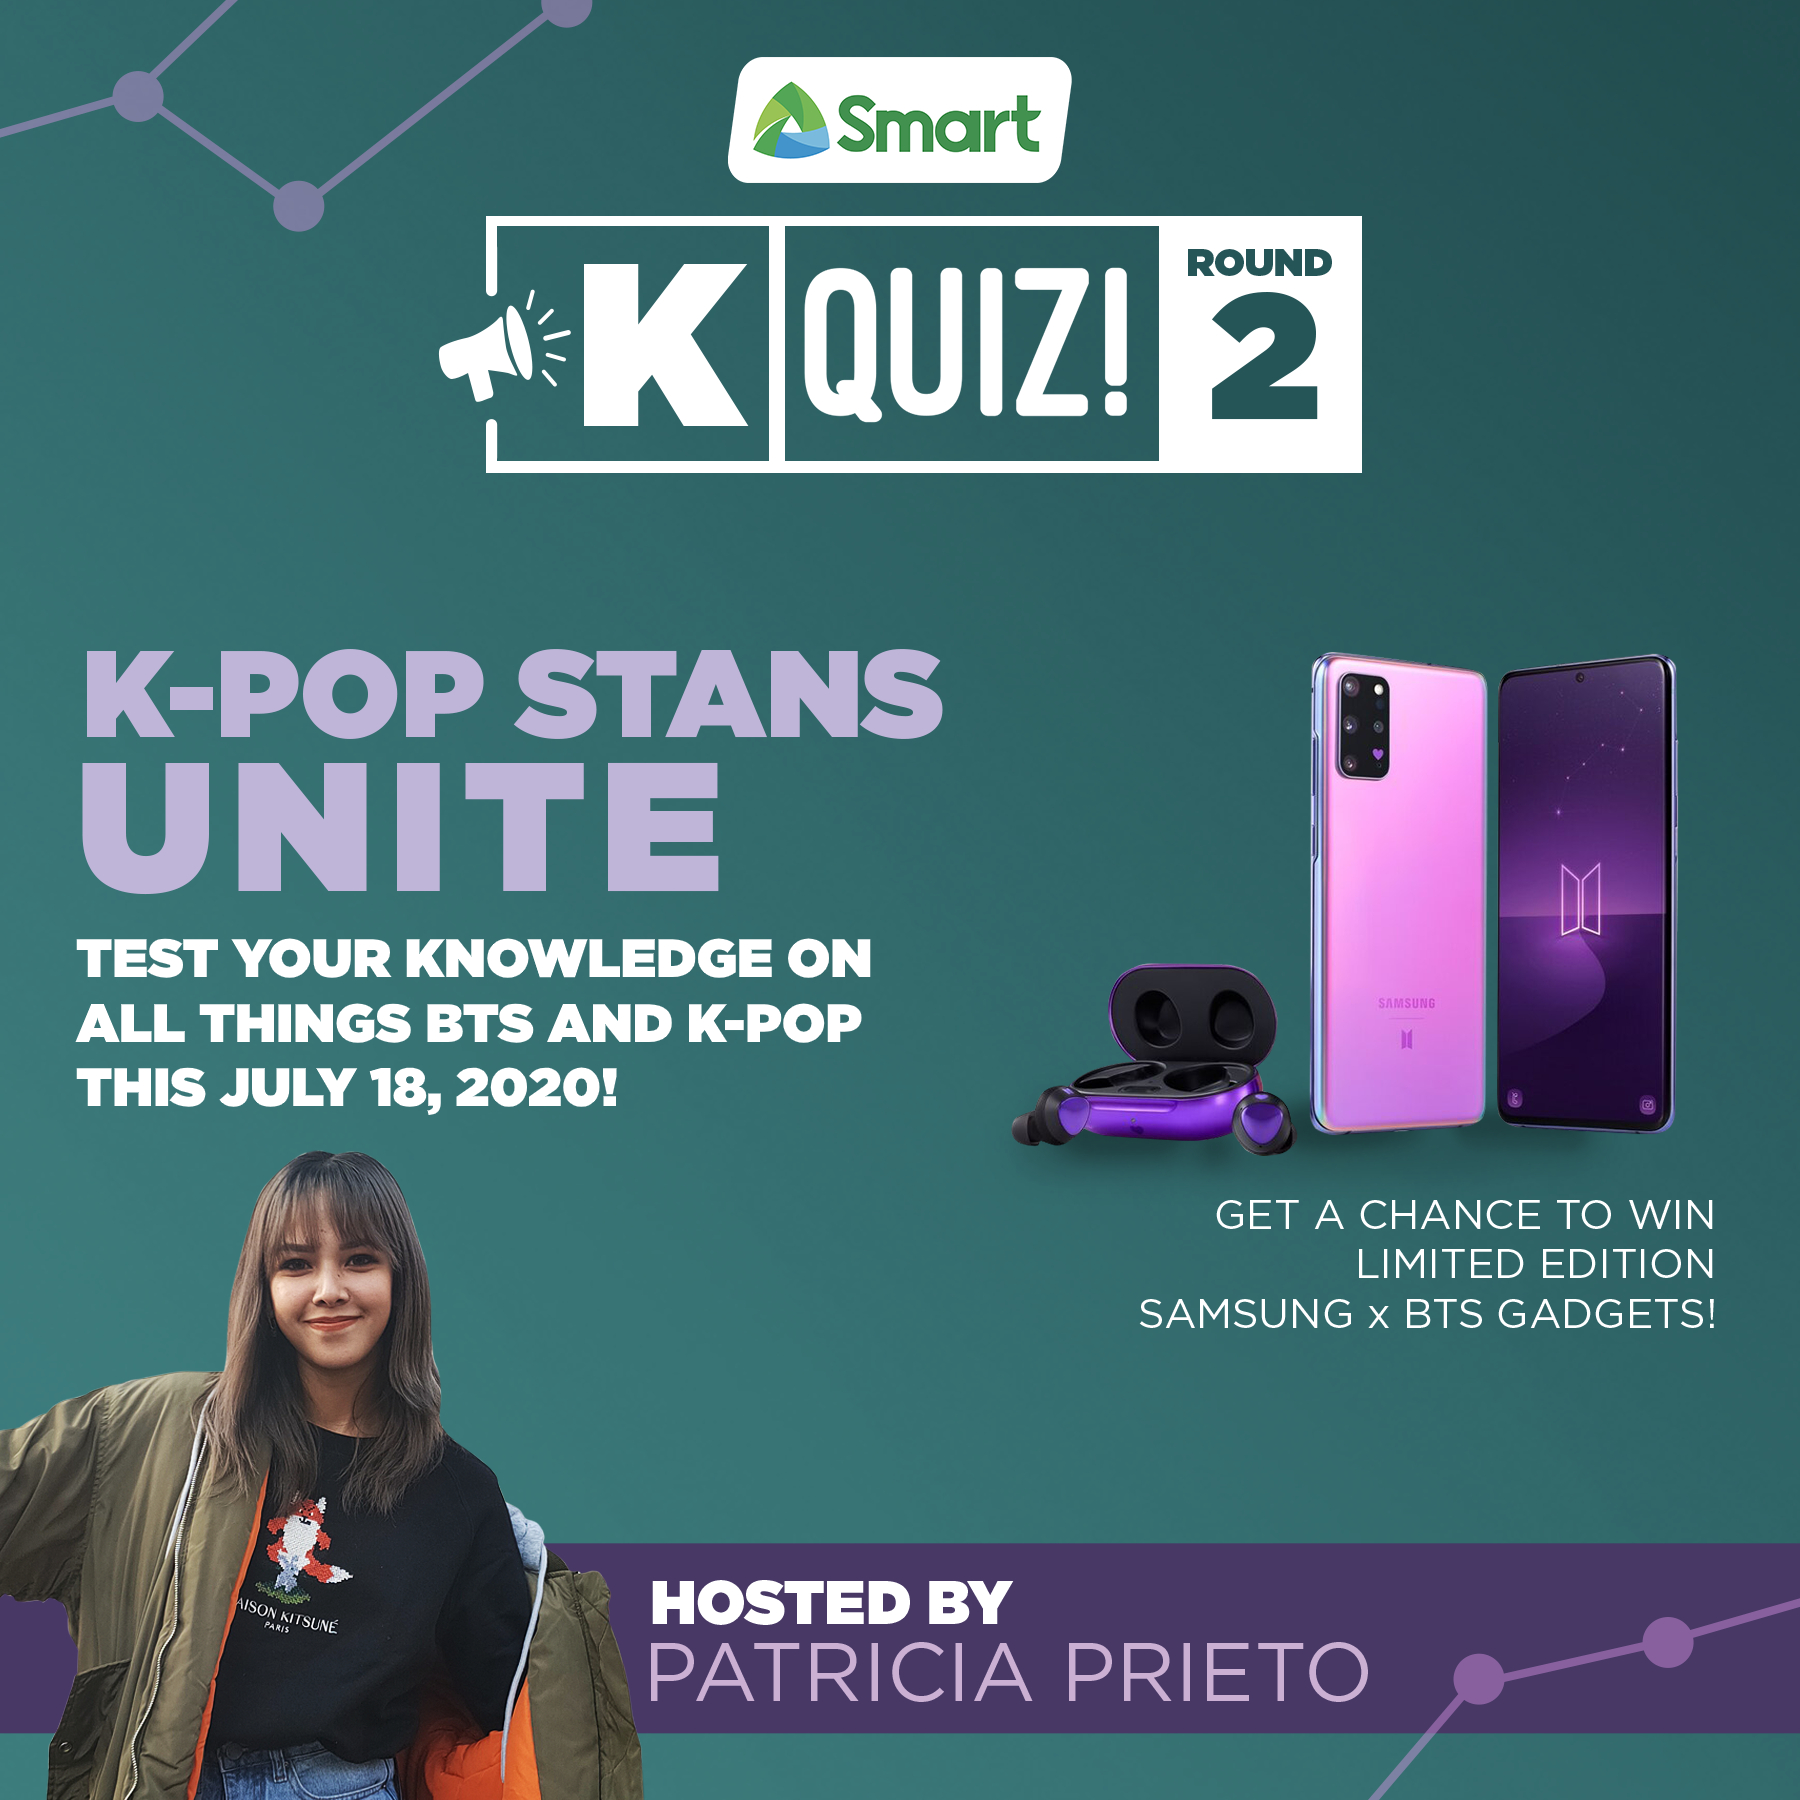 Smart K Quiz Night - Samsung Galaxy S20+ BTS Edition giveaway square